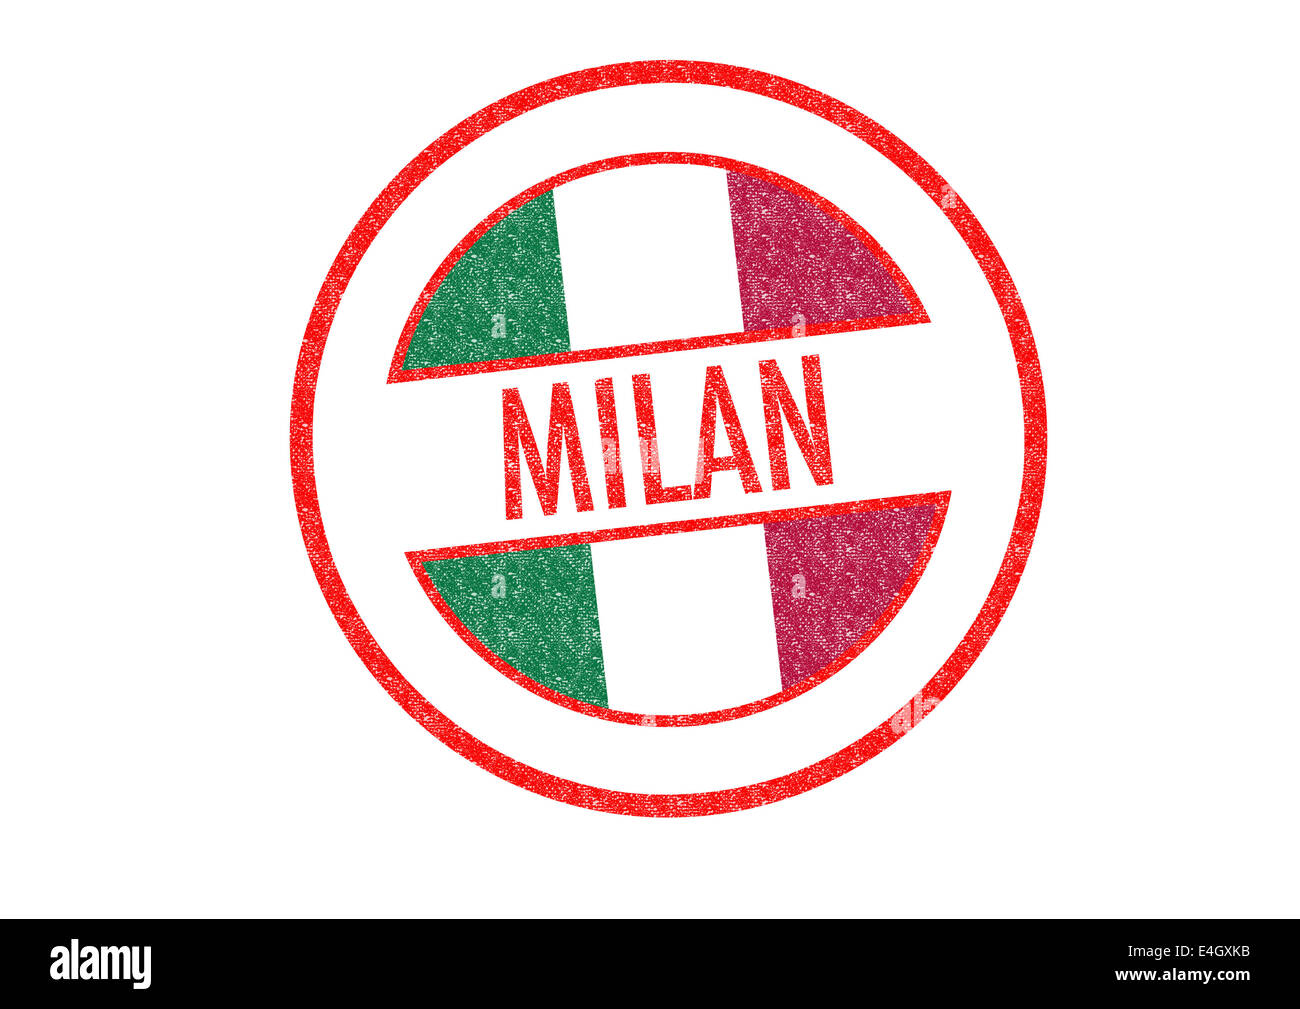 Passport-style MILAN rubber stamp over a white background. - Stock Image